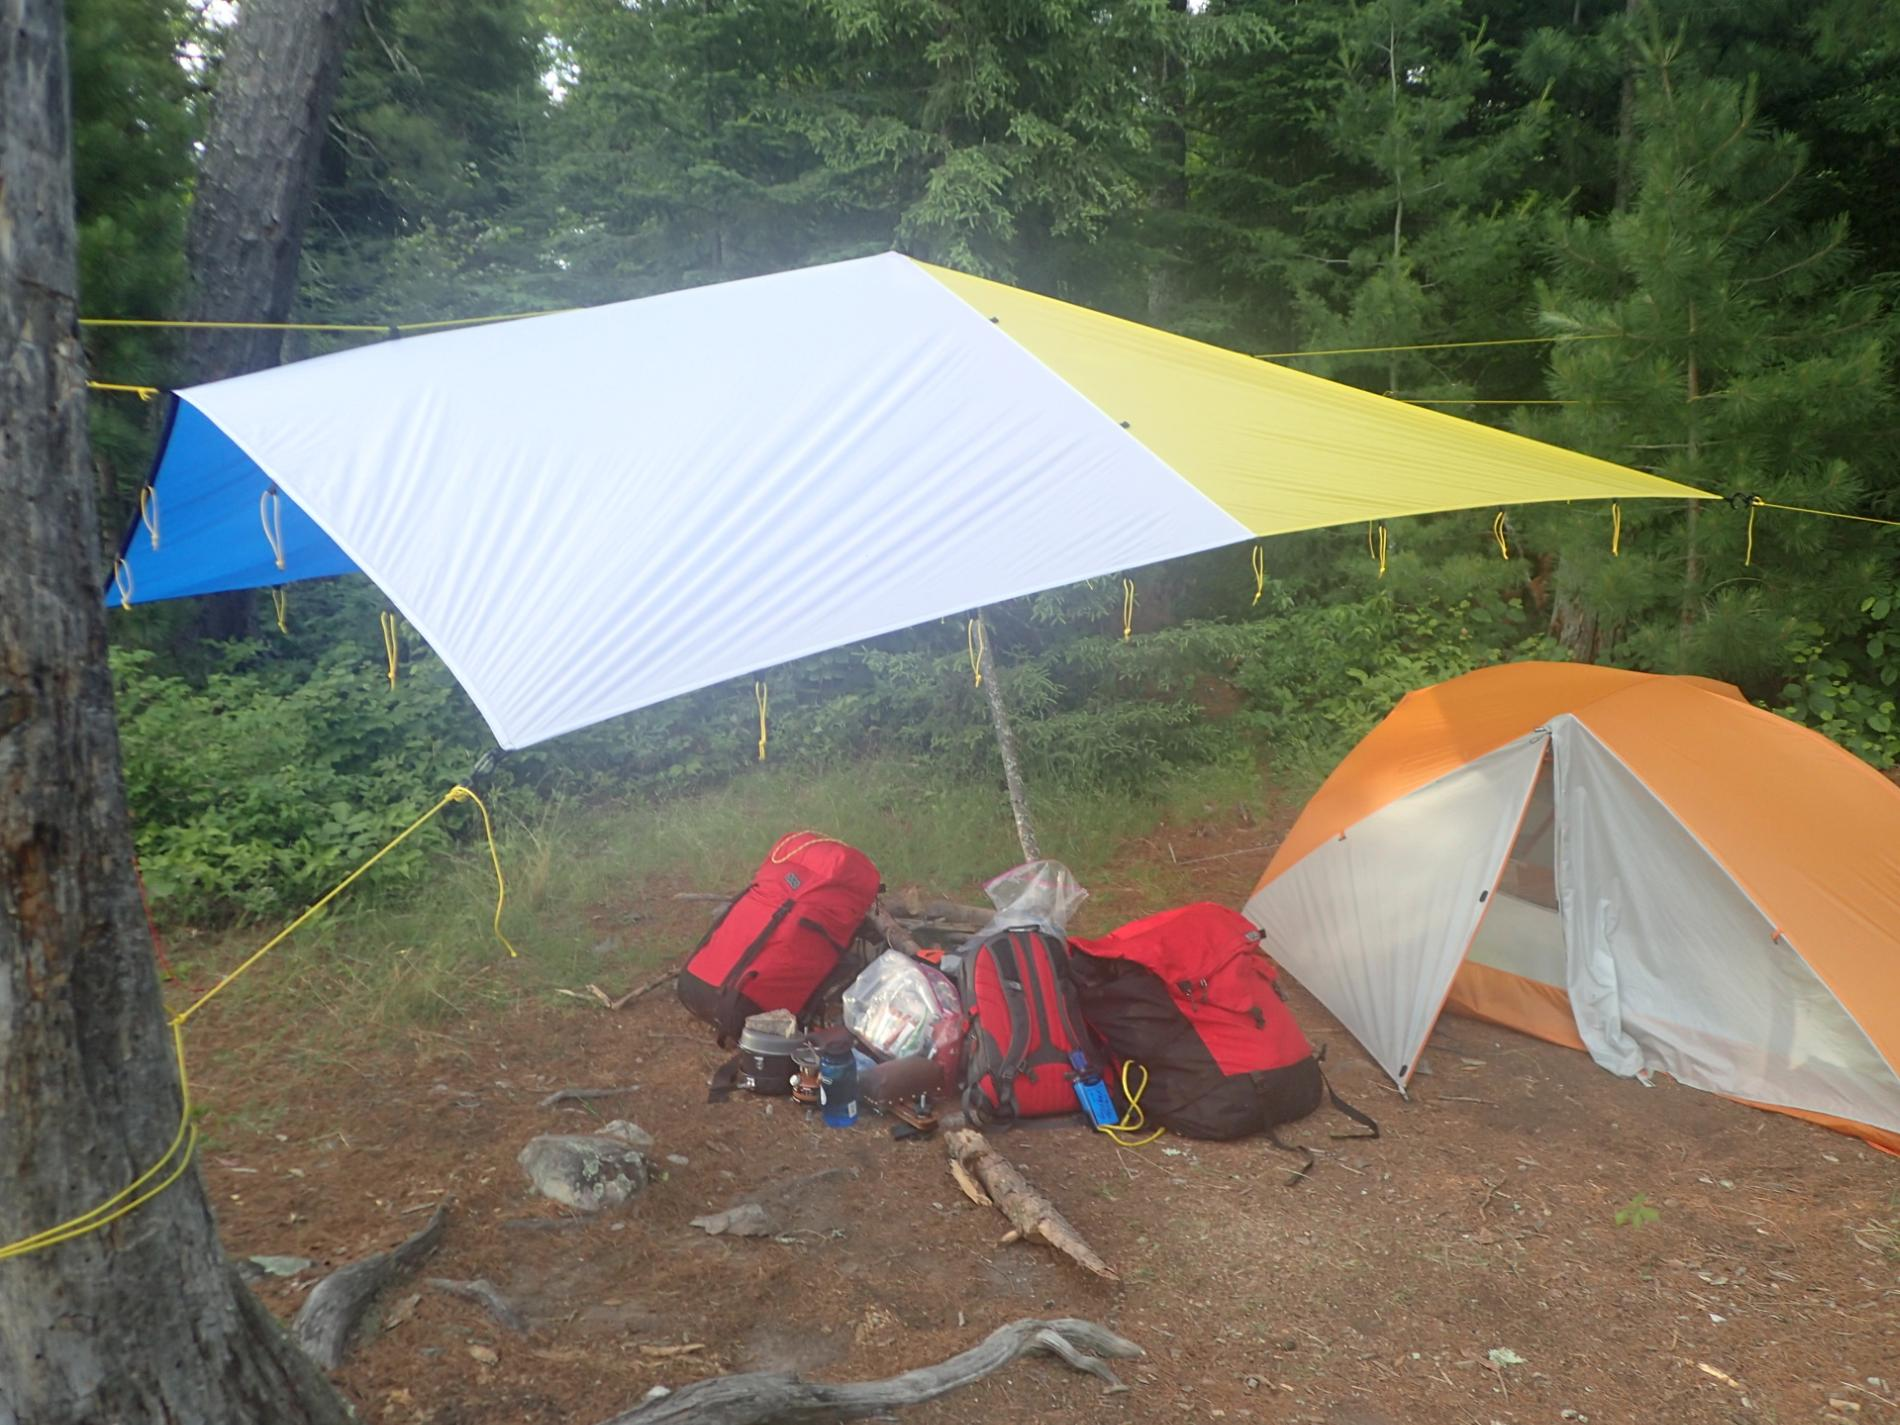 i use a sierra designs lightning xt 4 person tent when i go with a group